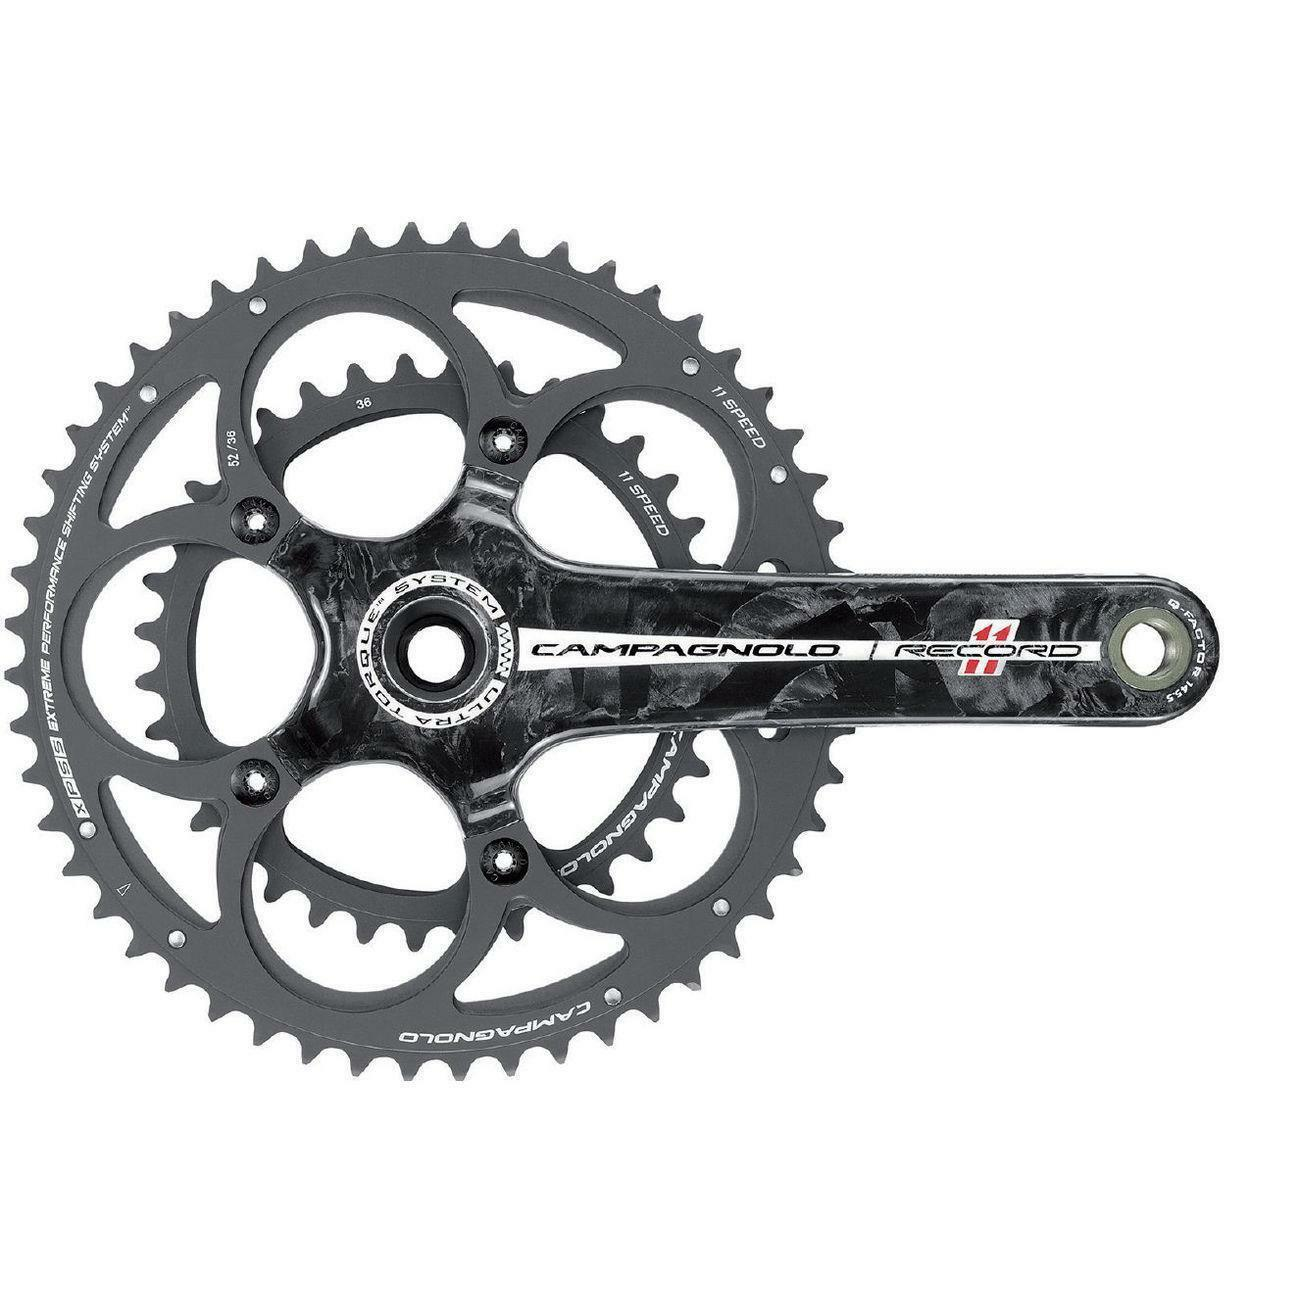 Campagnolo Record 11 Speed Ultra Torque Carbon Chainset All Größes